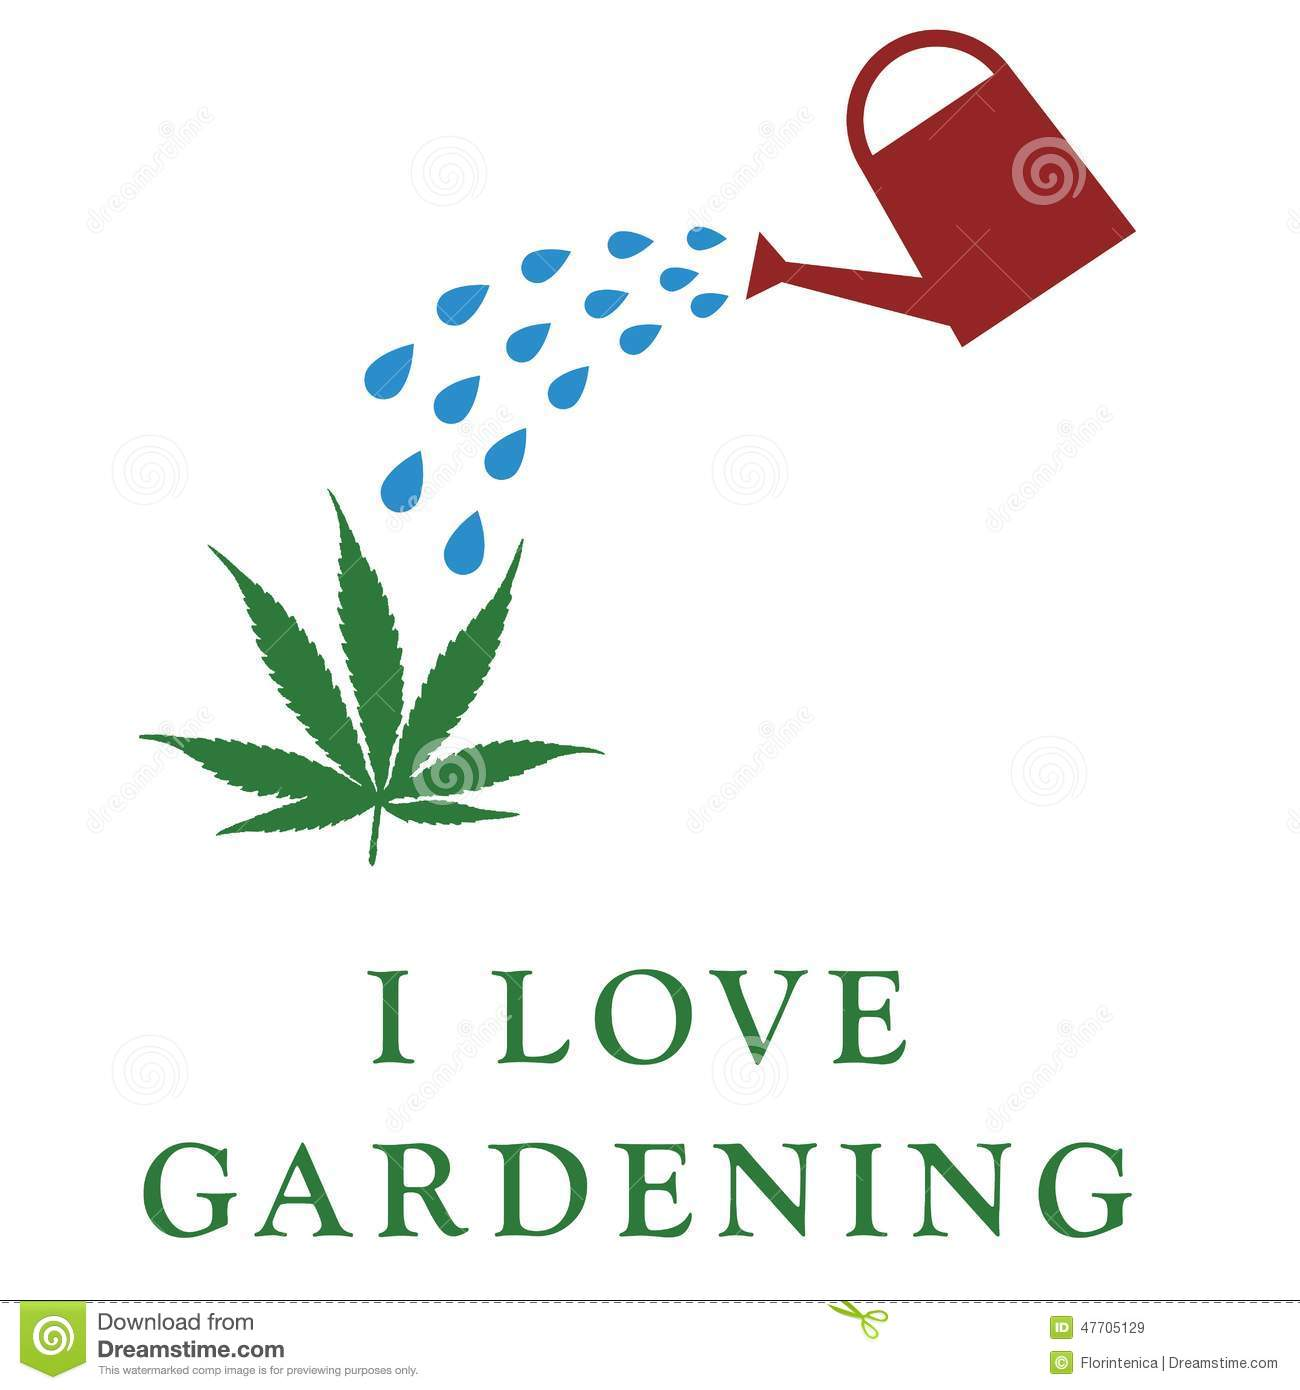 I love gardening stock illustration illustration of for Gardening is my passion